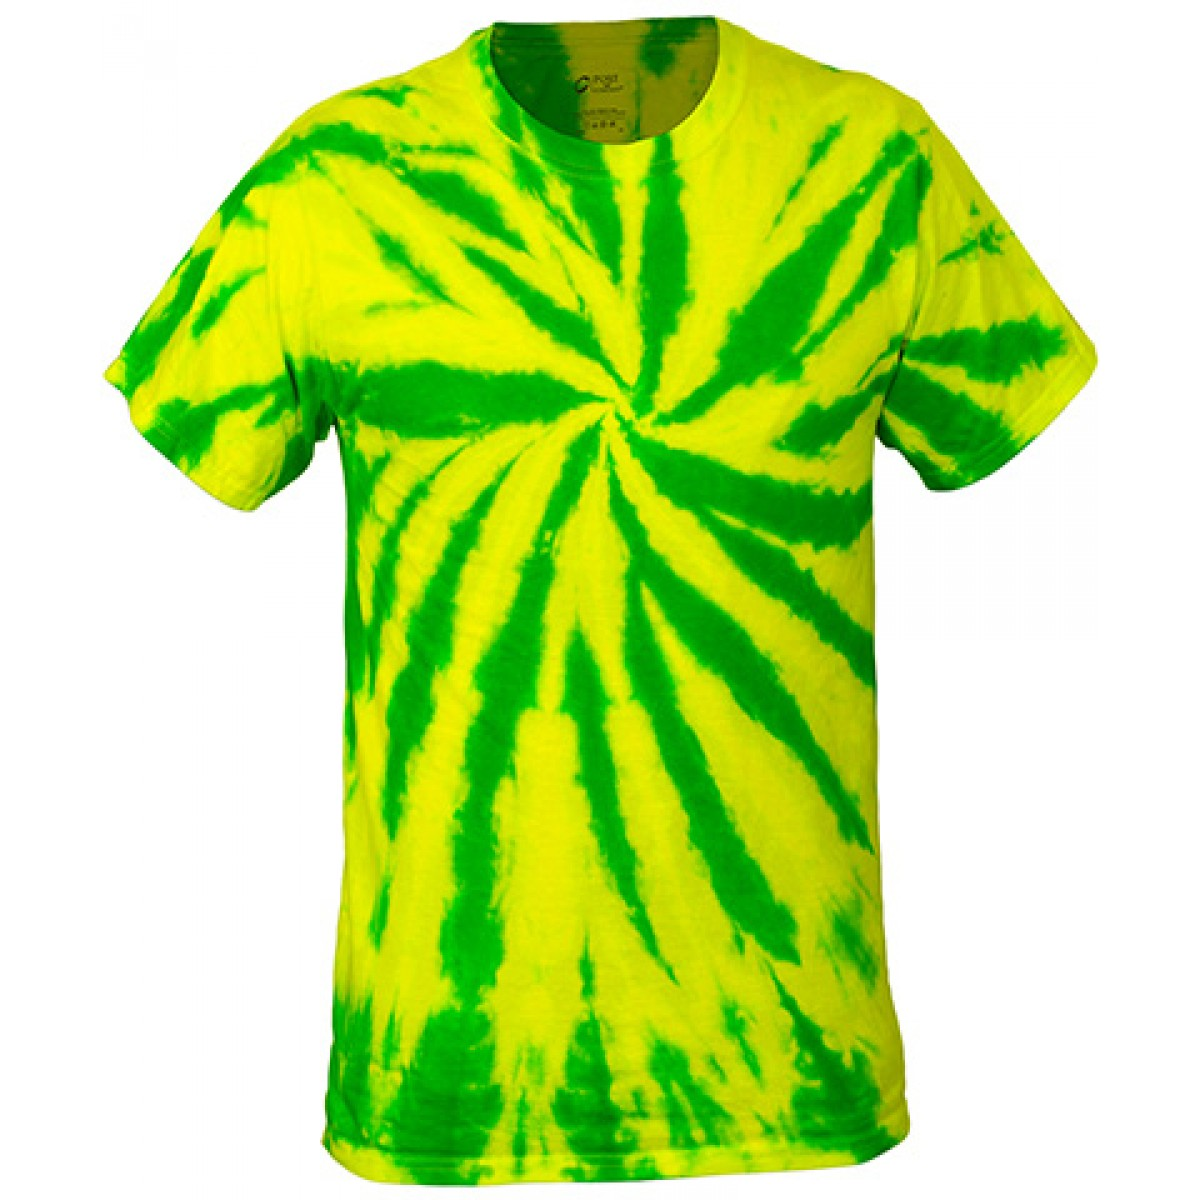 Multi-Color Tie-Dye Tee -Neon Green-YM